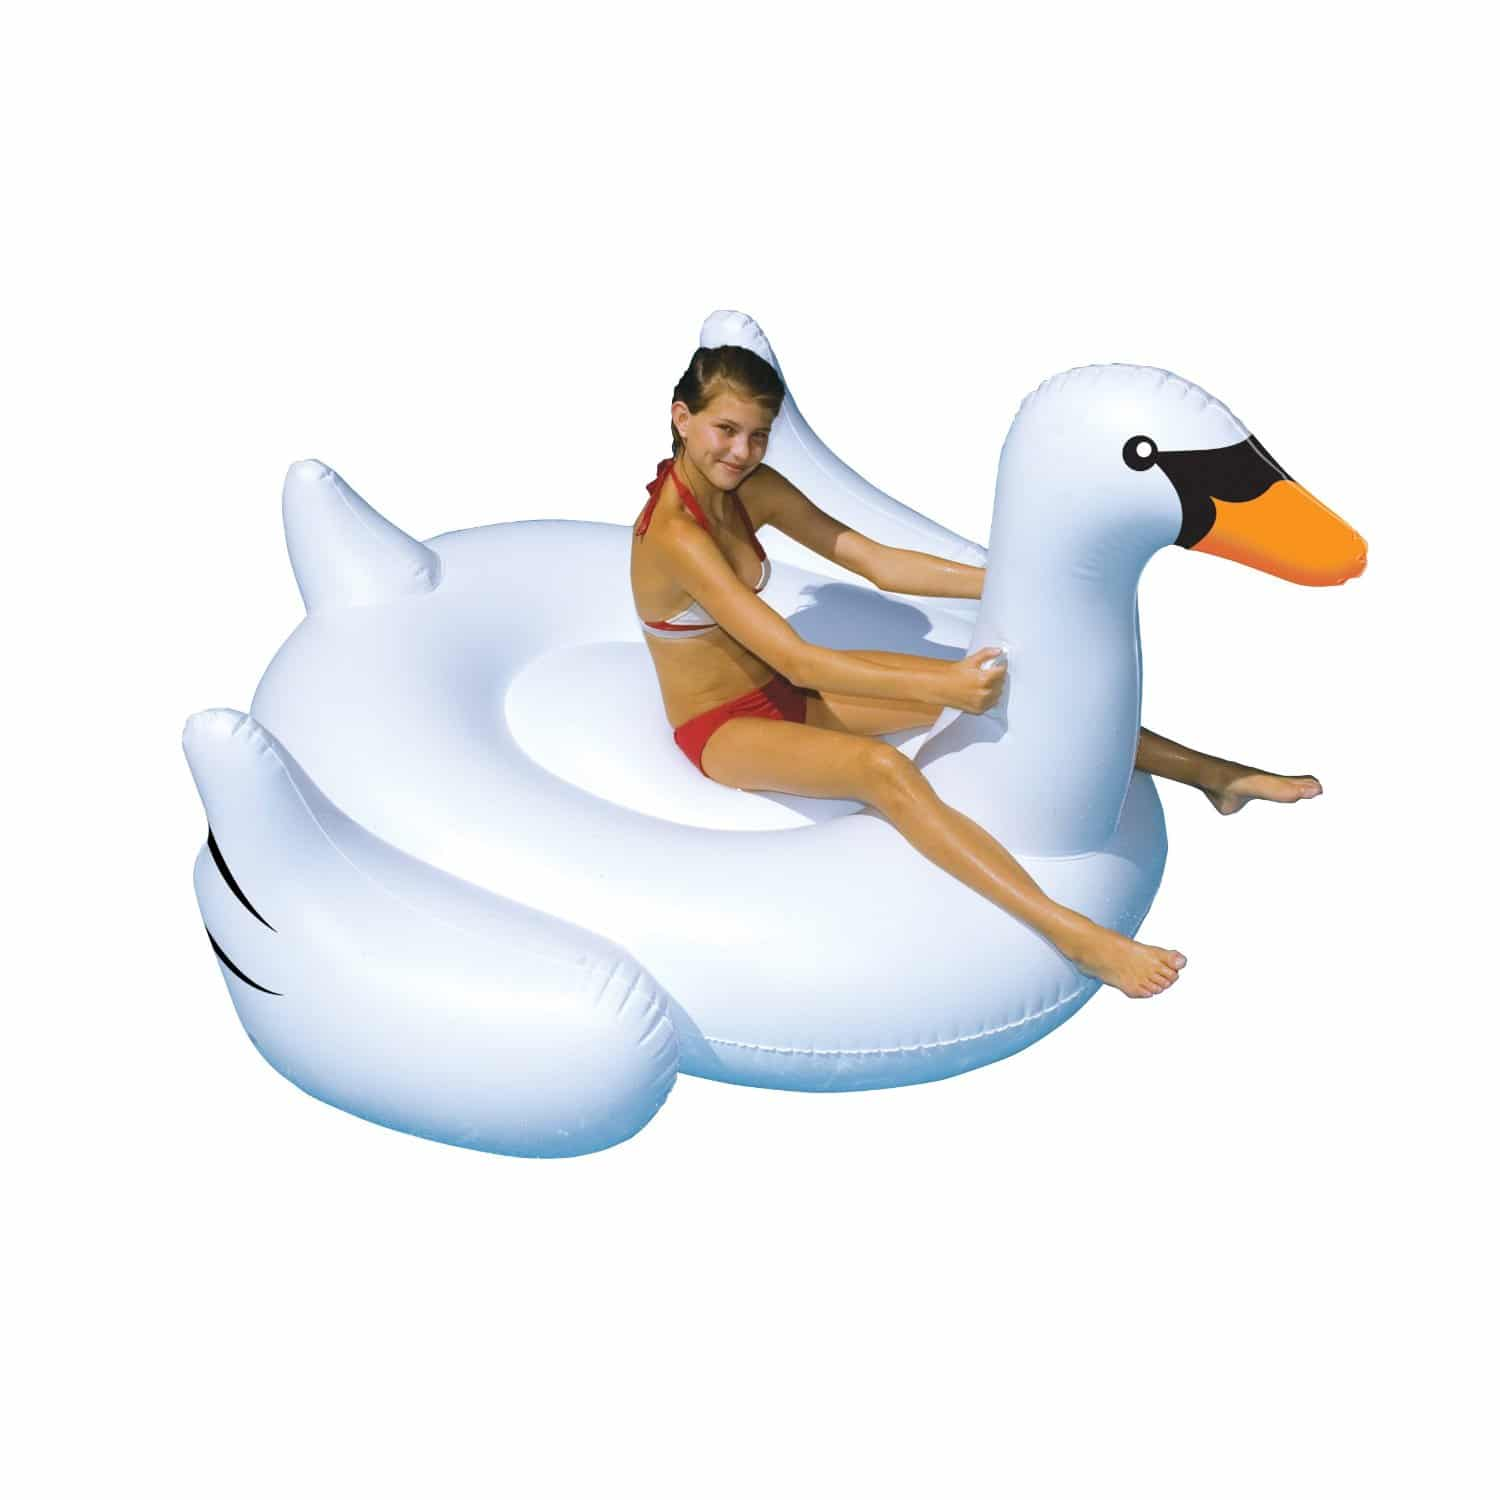 swimming floats for adults